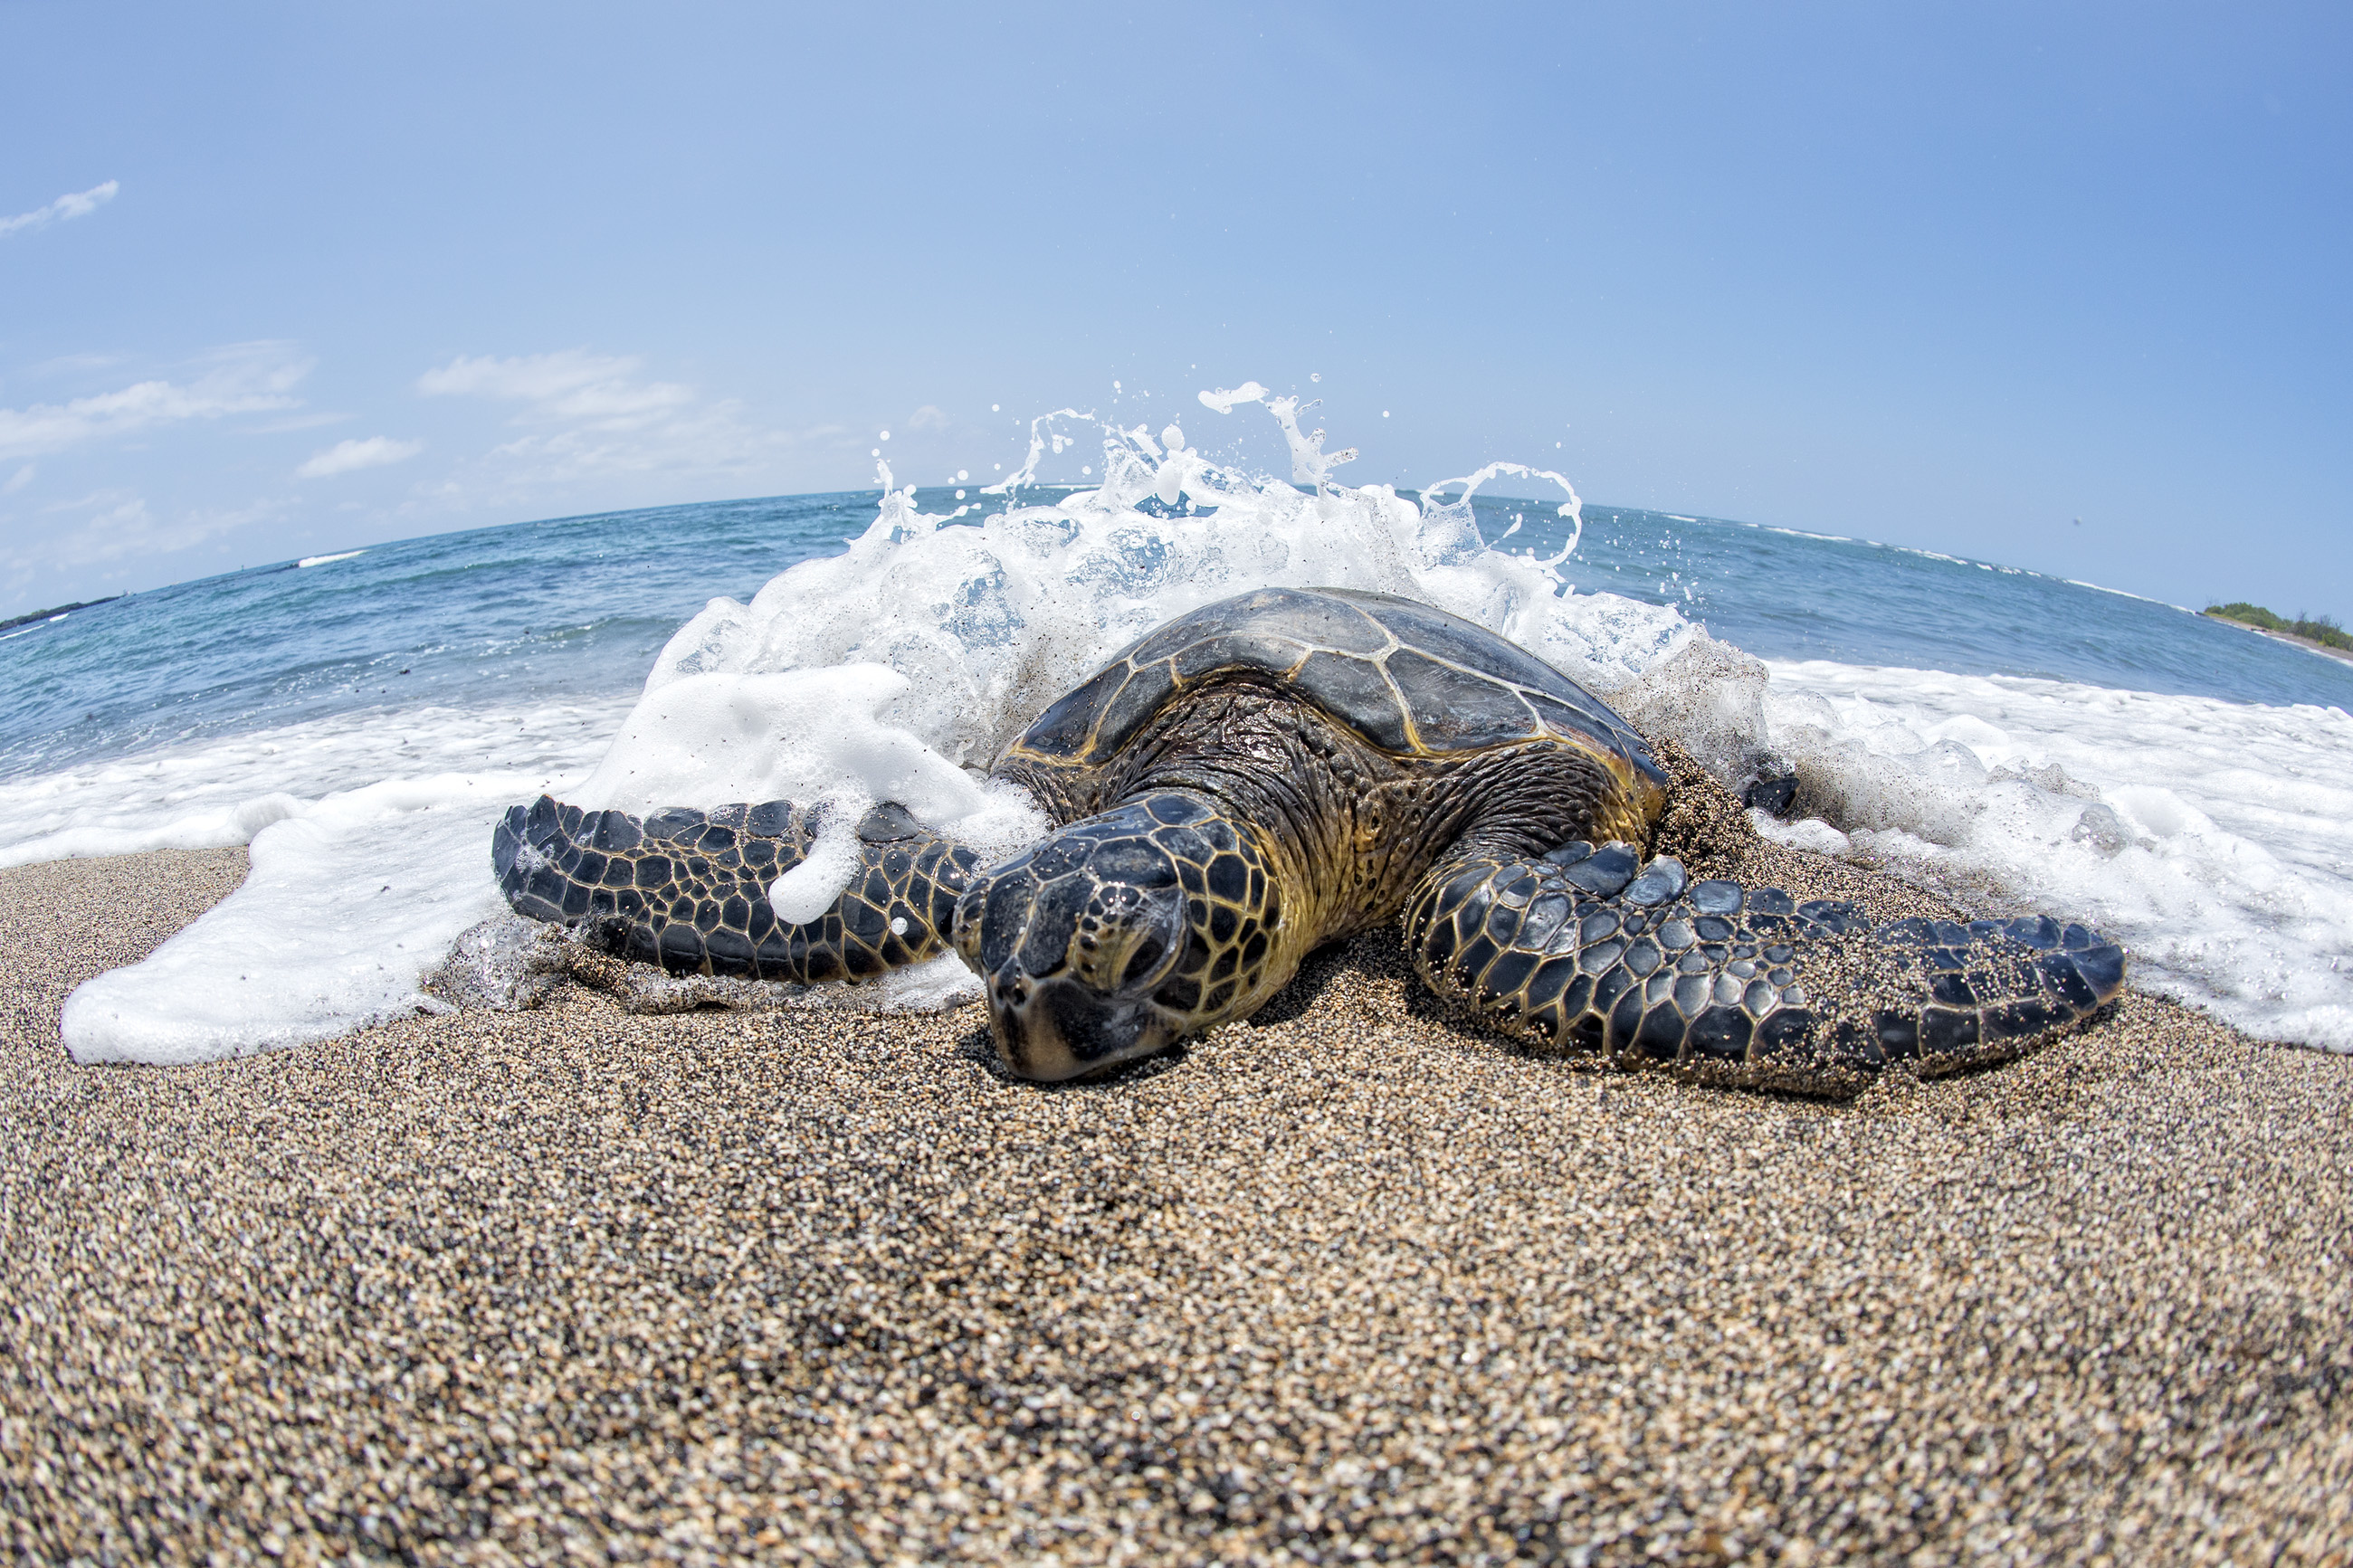 Hawaiian Green Sea Turtles on Oahu's sandy beach | Ohana Circle Island Tour